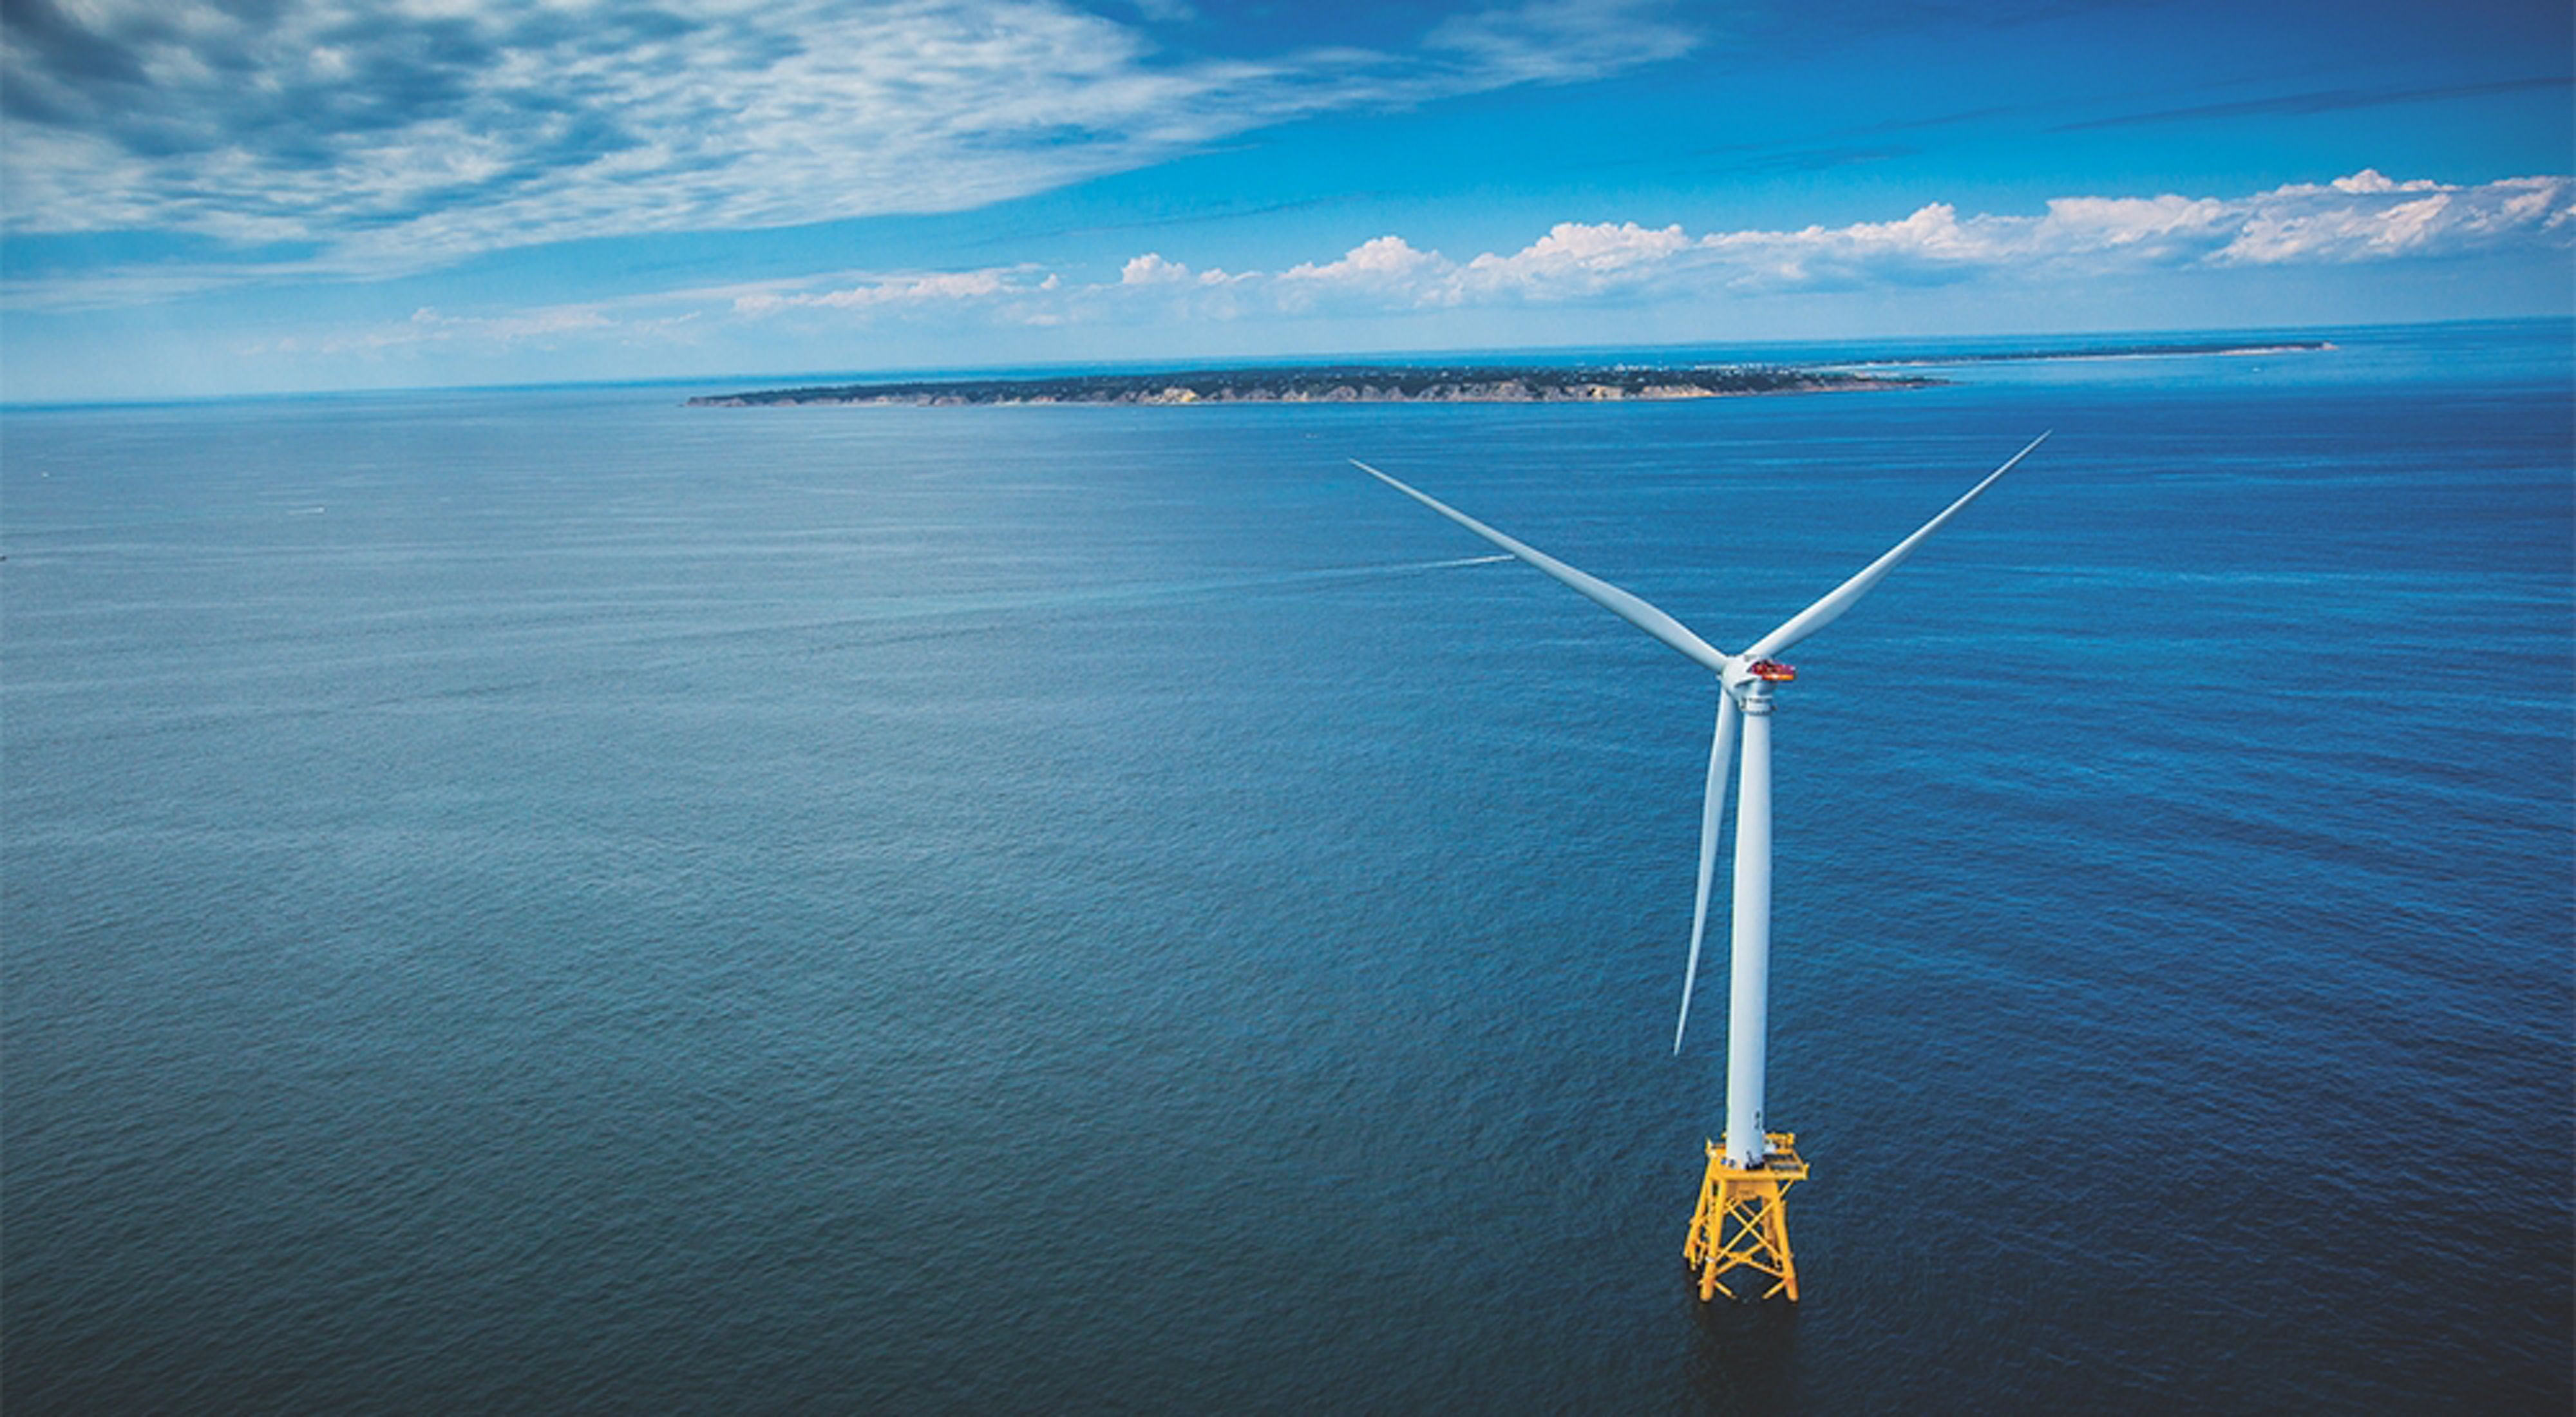 An aerial view of a wind turbine in the ocean with the coast of Block Island and Rhode Island in the background.